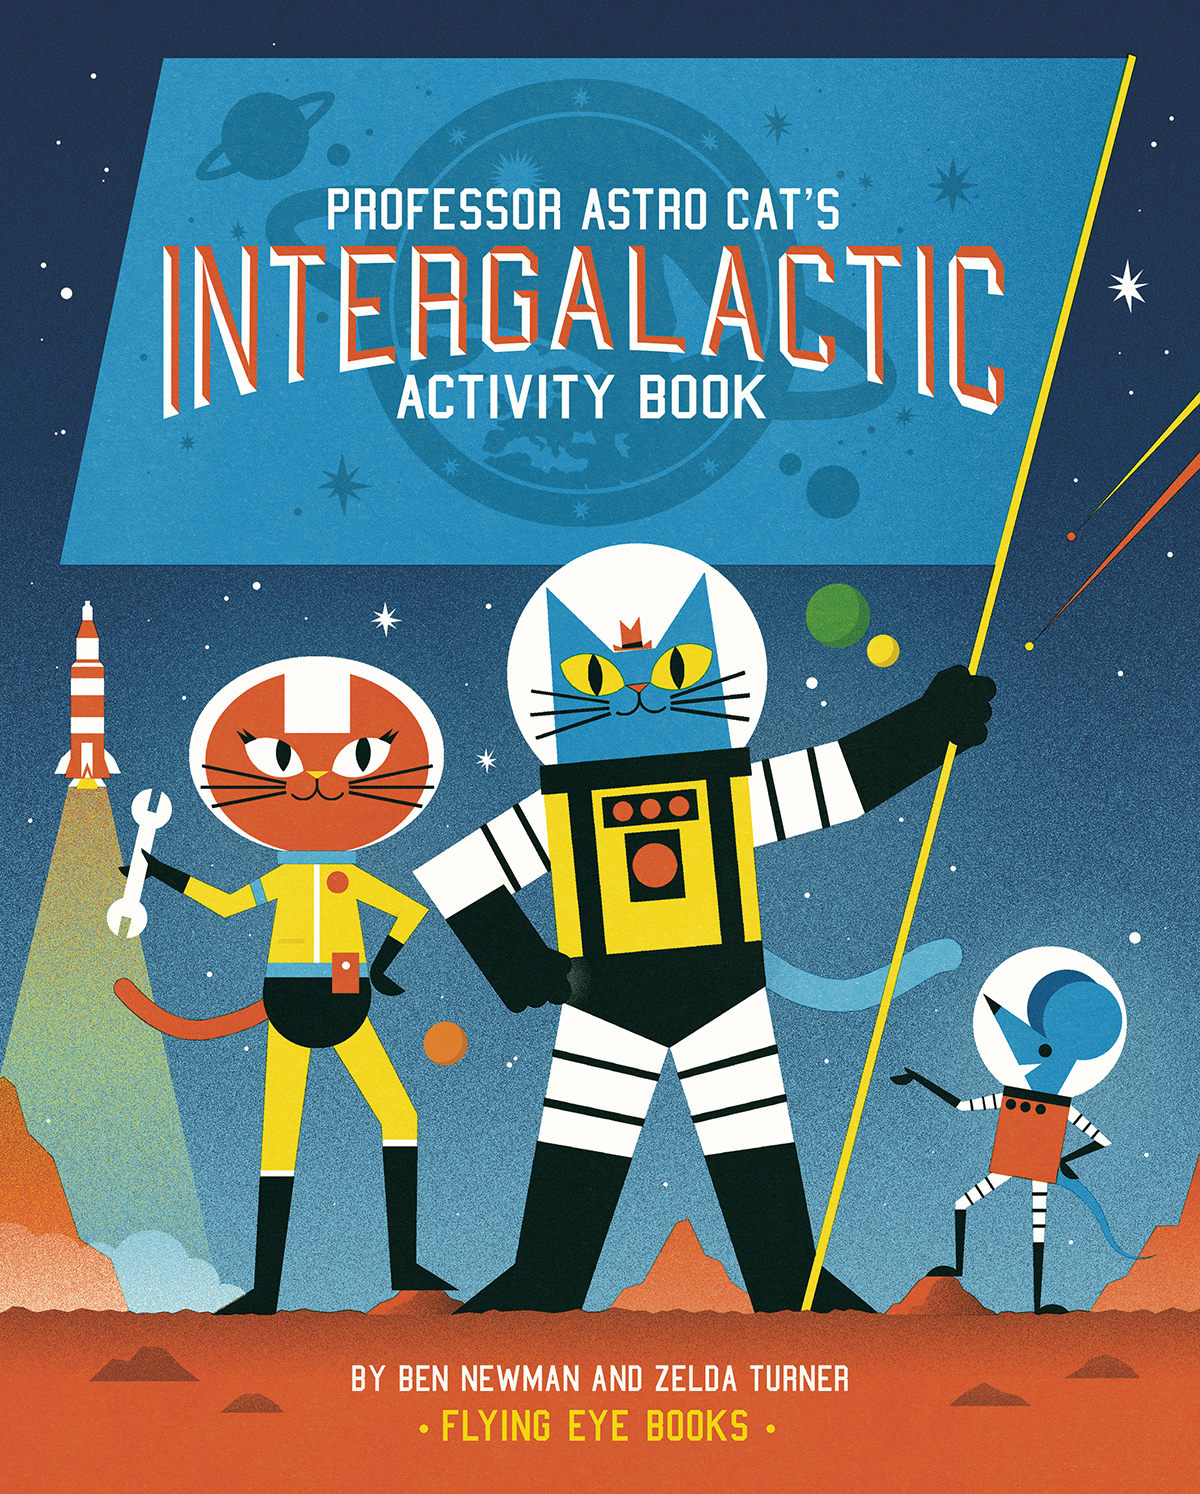 Professor Astro Cat's Intergalactic Activity Book